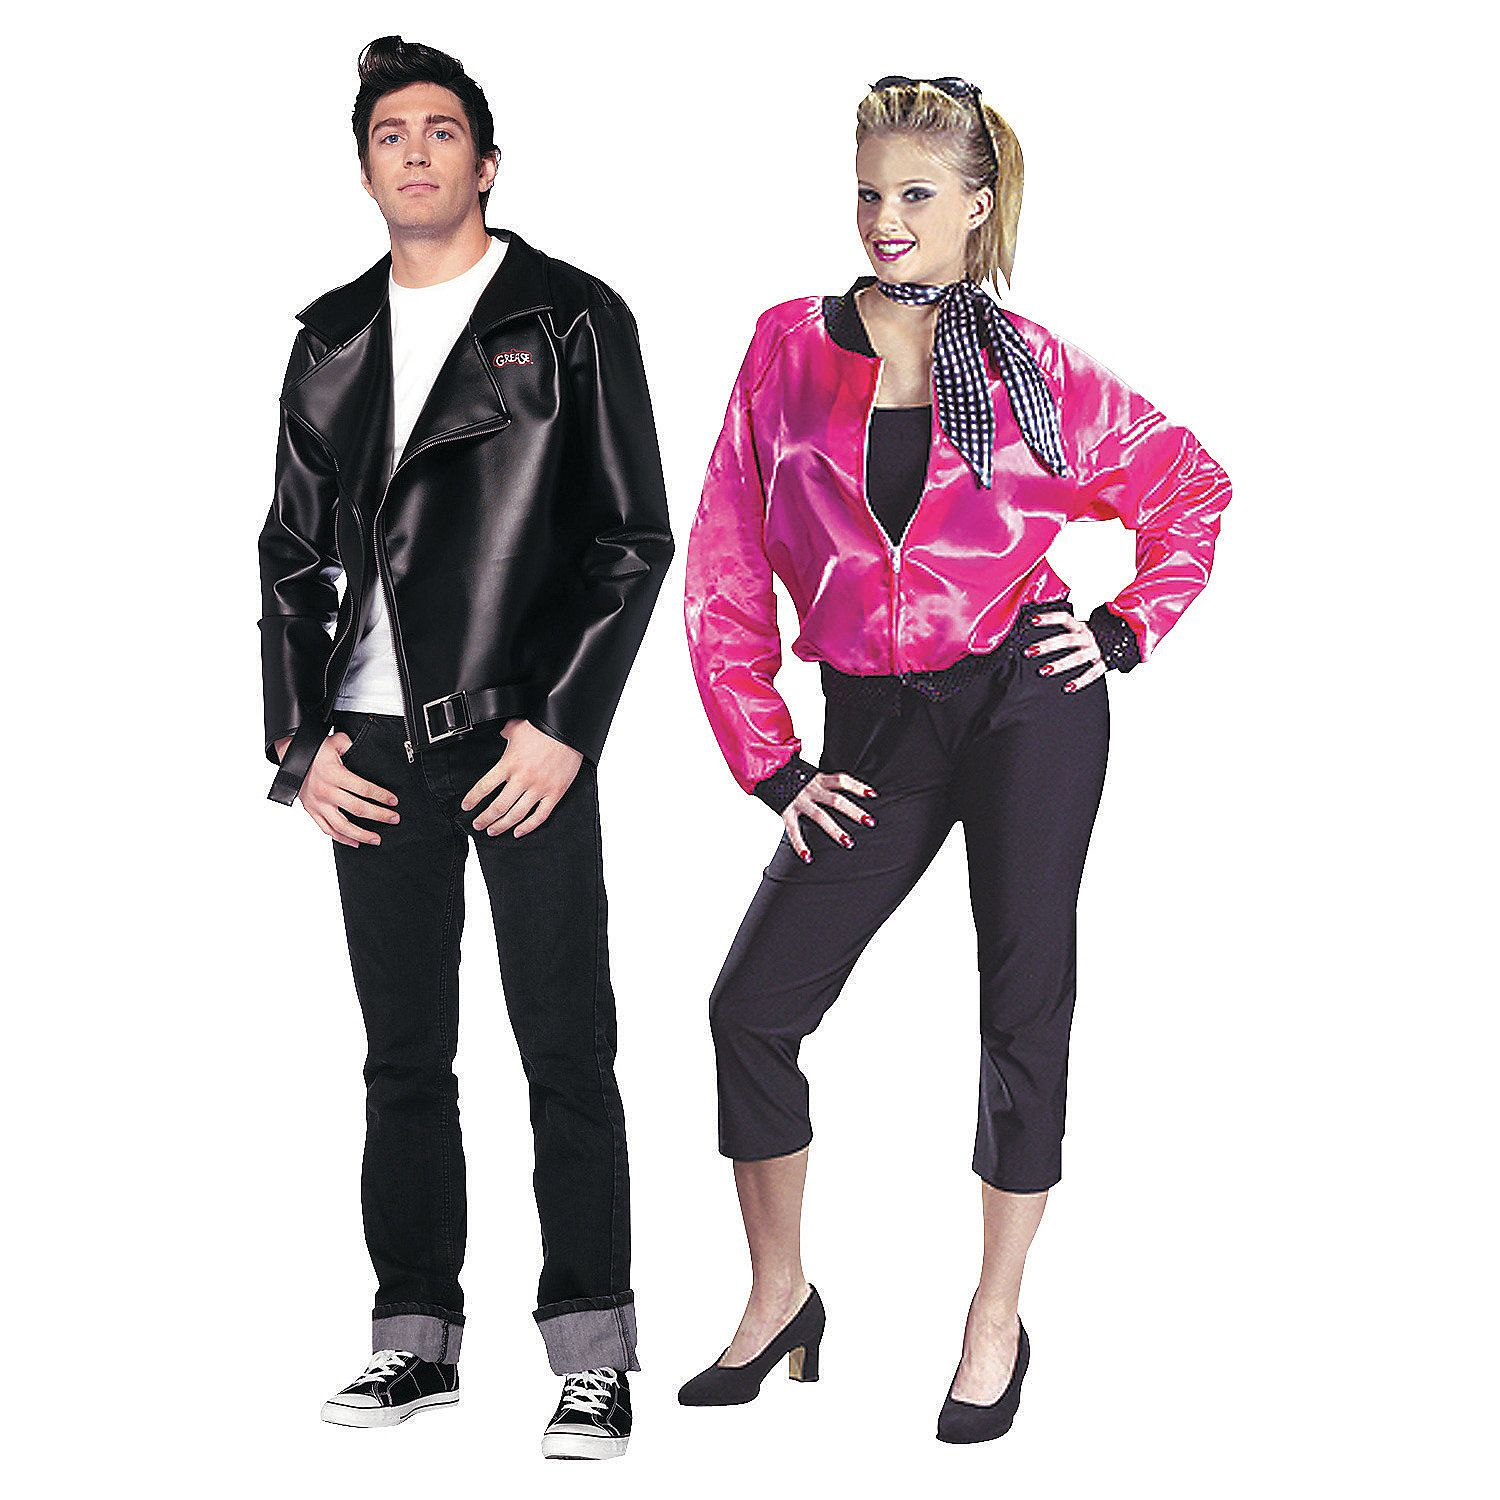 Grease Couples Costumes - OrientalTrading.com  sc 1 st  Pinterest & Grease Couples Costumes - OrientalTrading.com | Halloween Costume ...